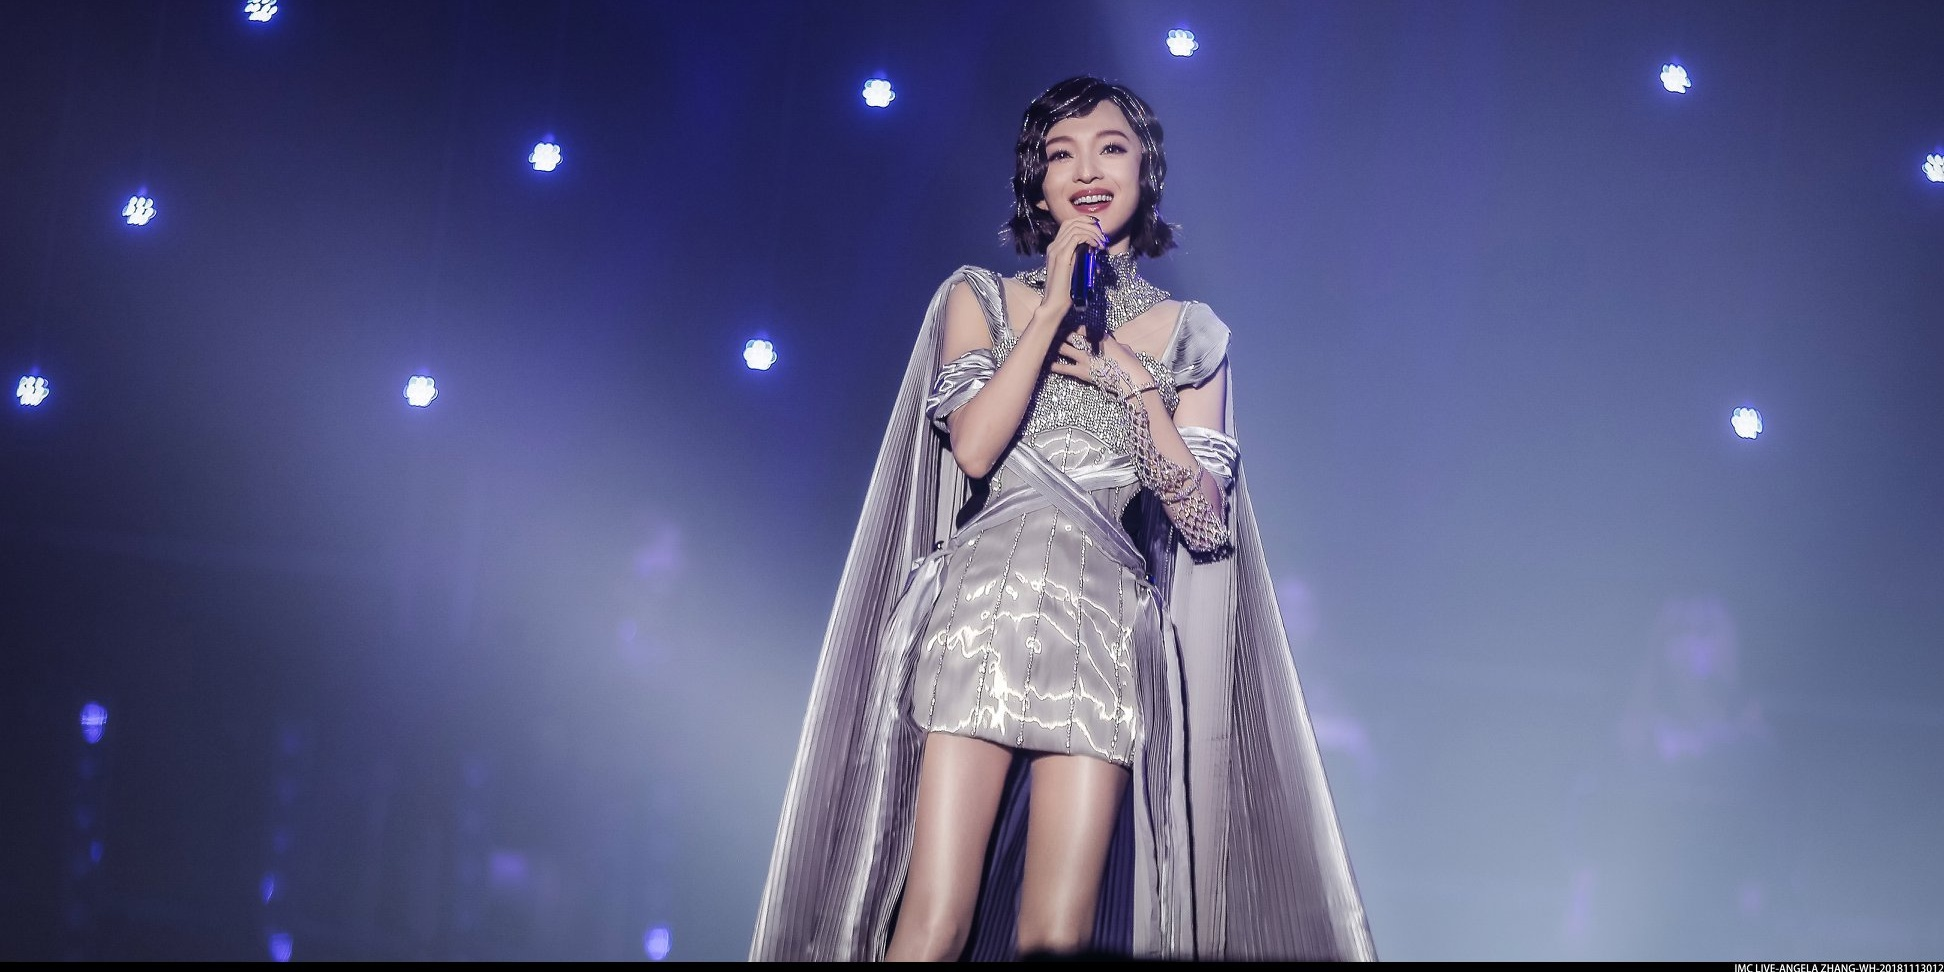 Angela Zhang Returns to Singapore with Solo Concert in 2019